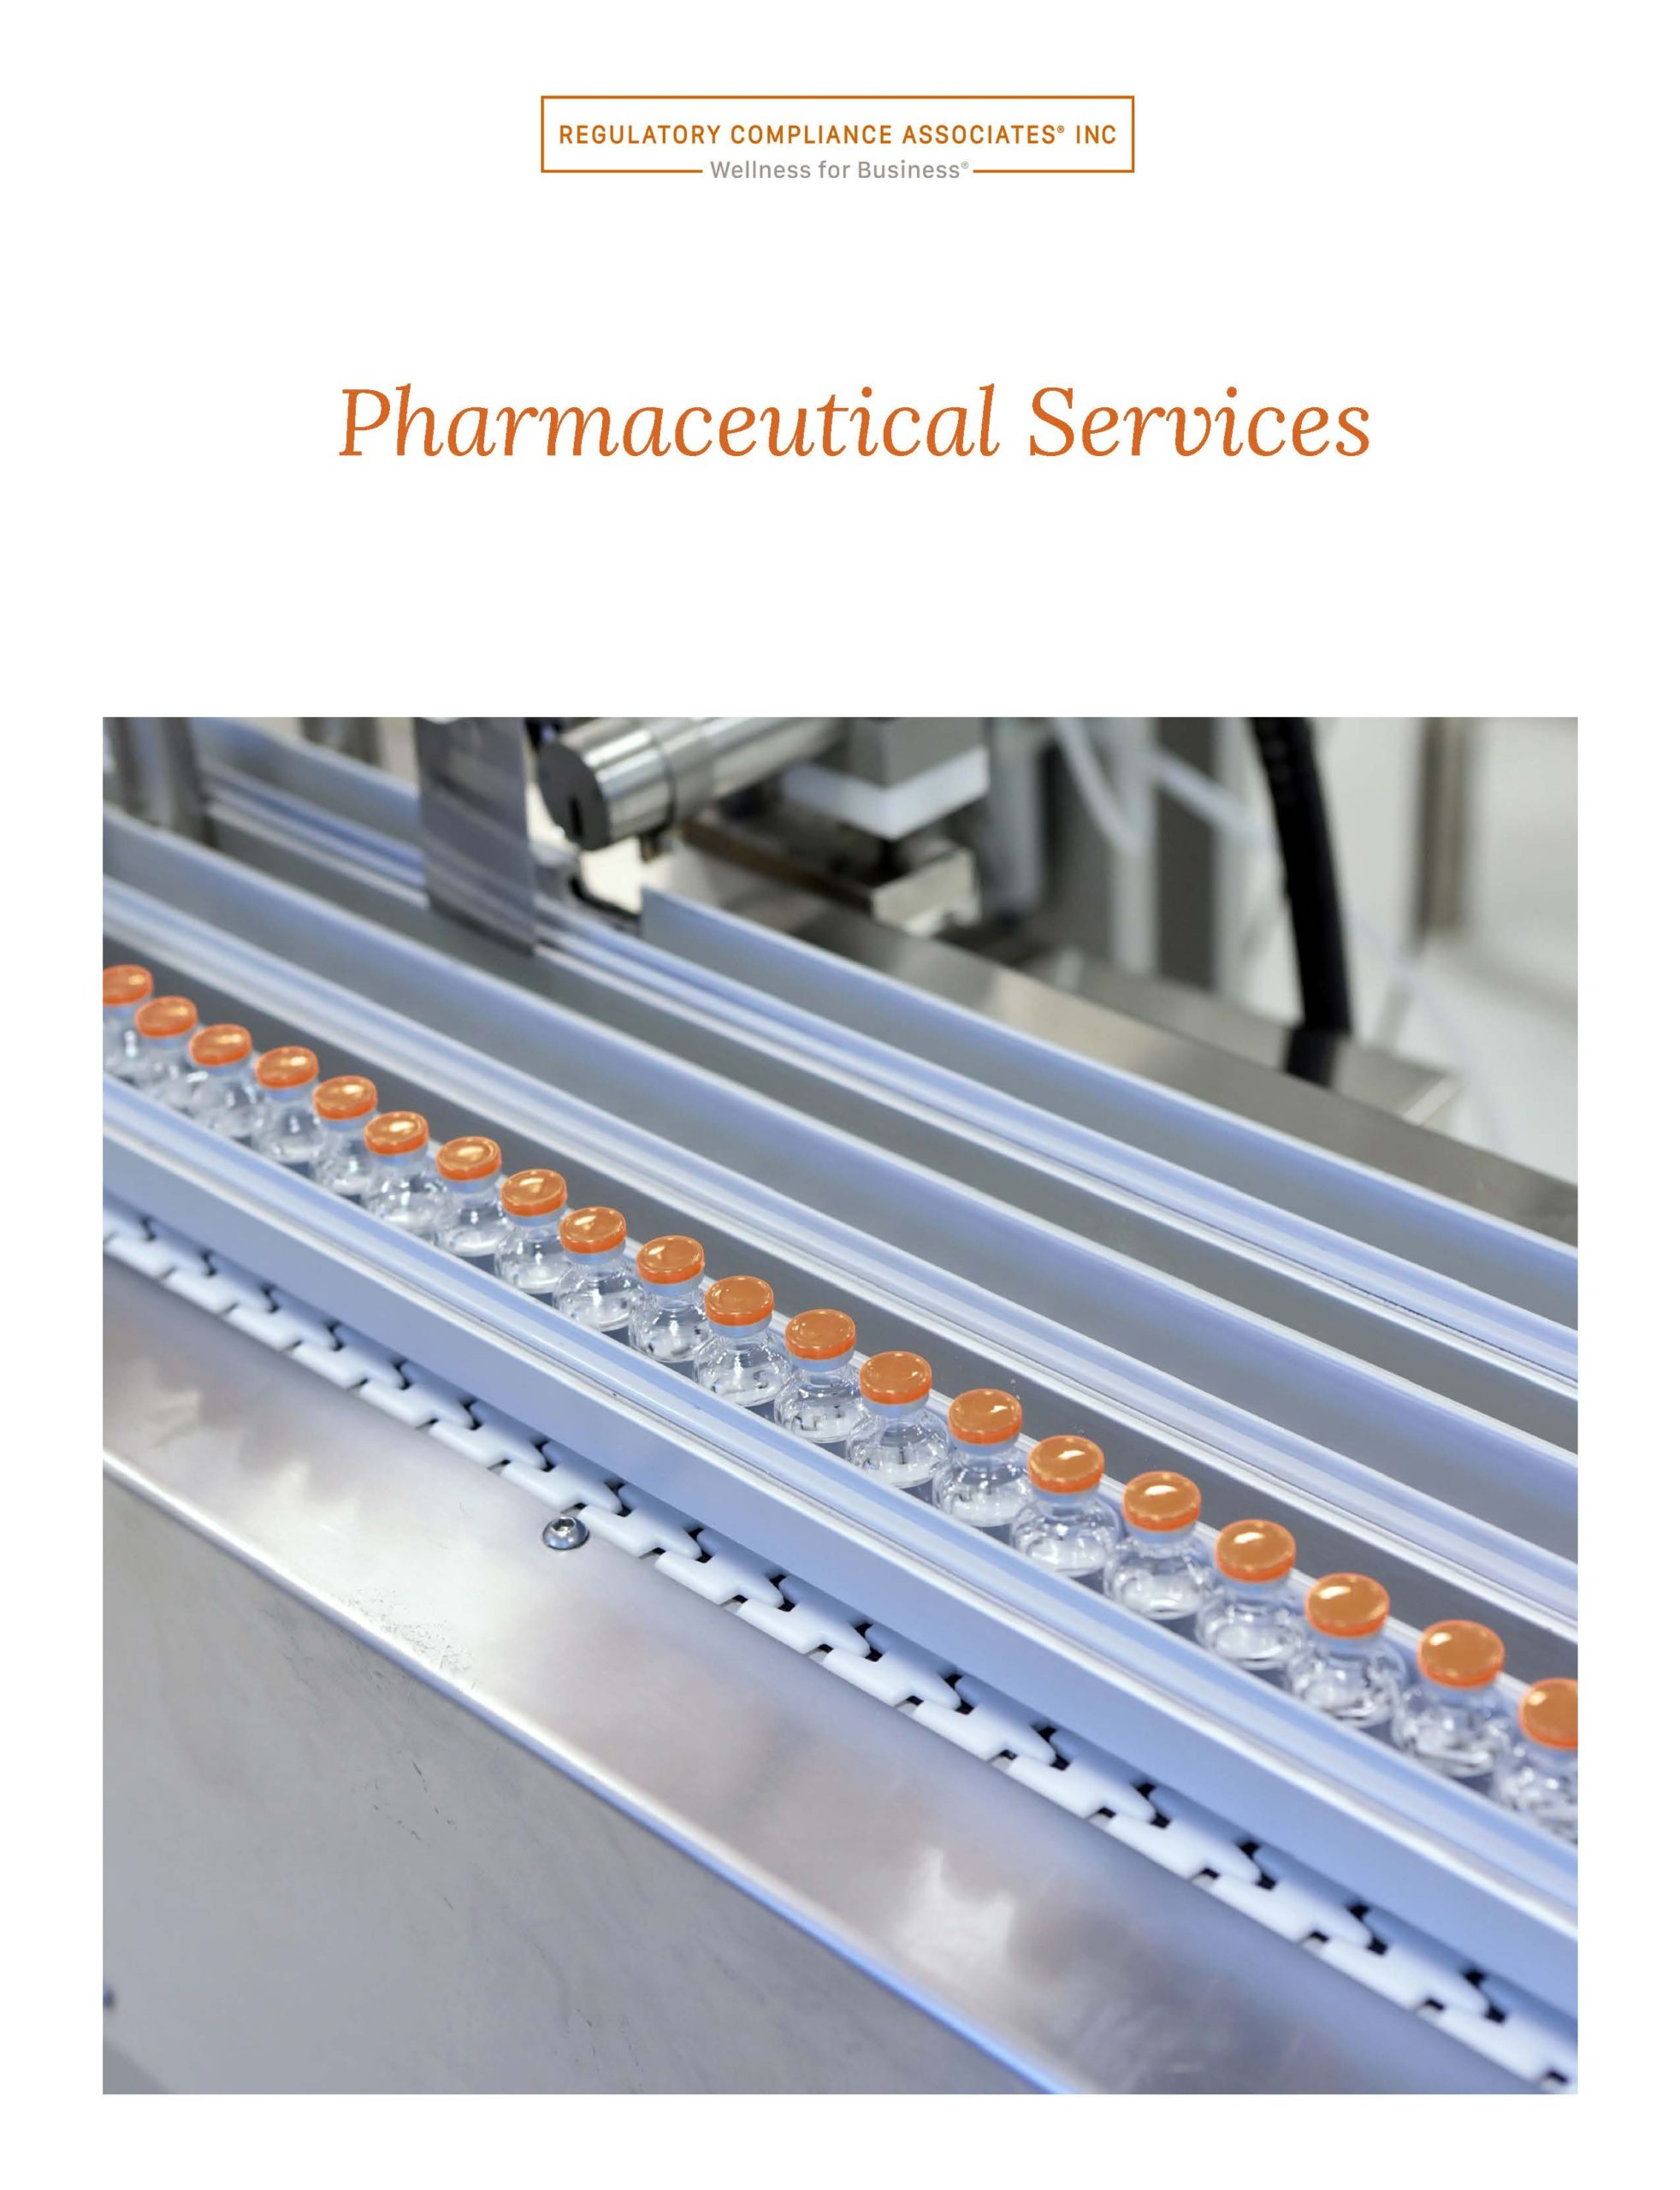 Pharmaceutical Services Info Sheet